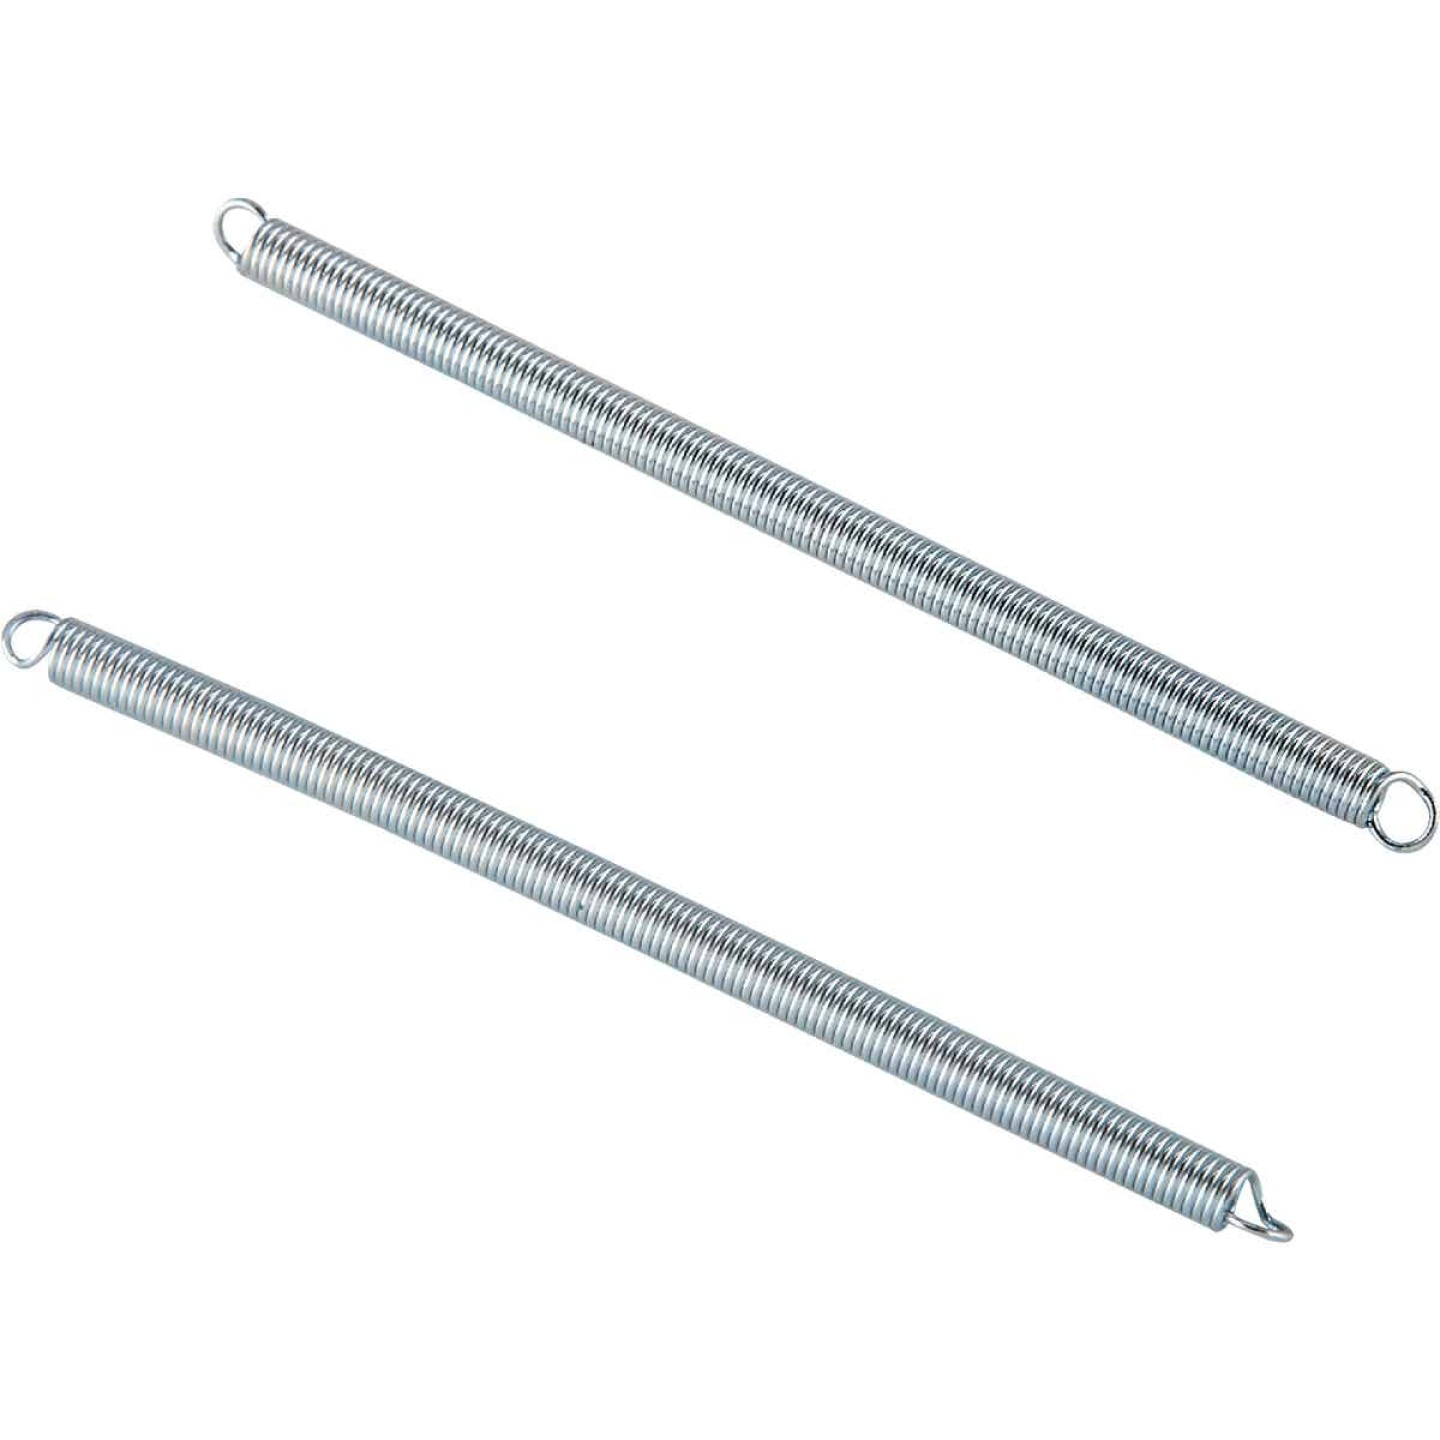 Century Spring 6-1/2 In. x 3/8 In. Extension Spring (2 Count) Image 1